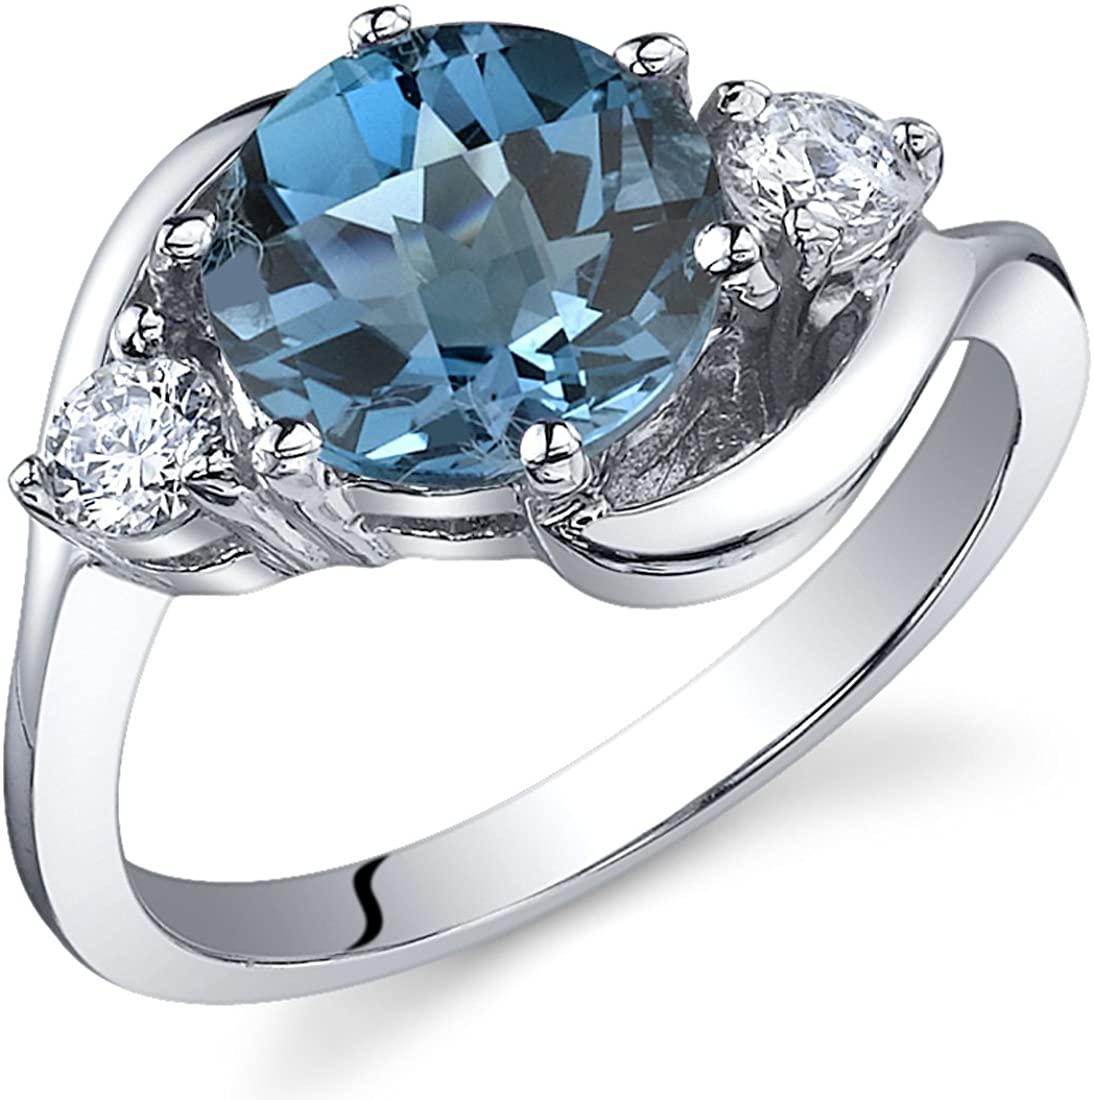 Swiss Blue Topaz Solitaire Style Ring Sterling Silver Rhodium Nickel Finish 2.25 Carats Sizes 5 to 9